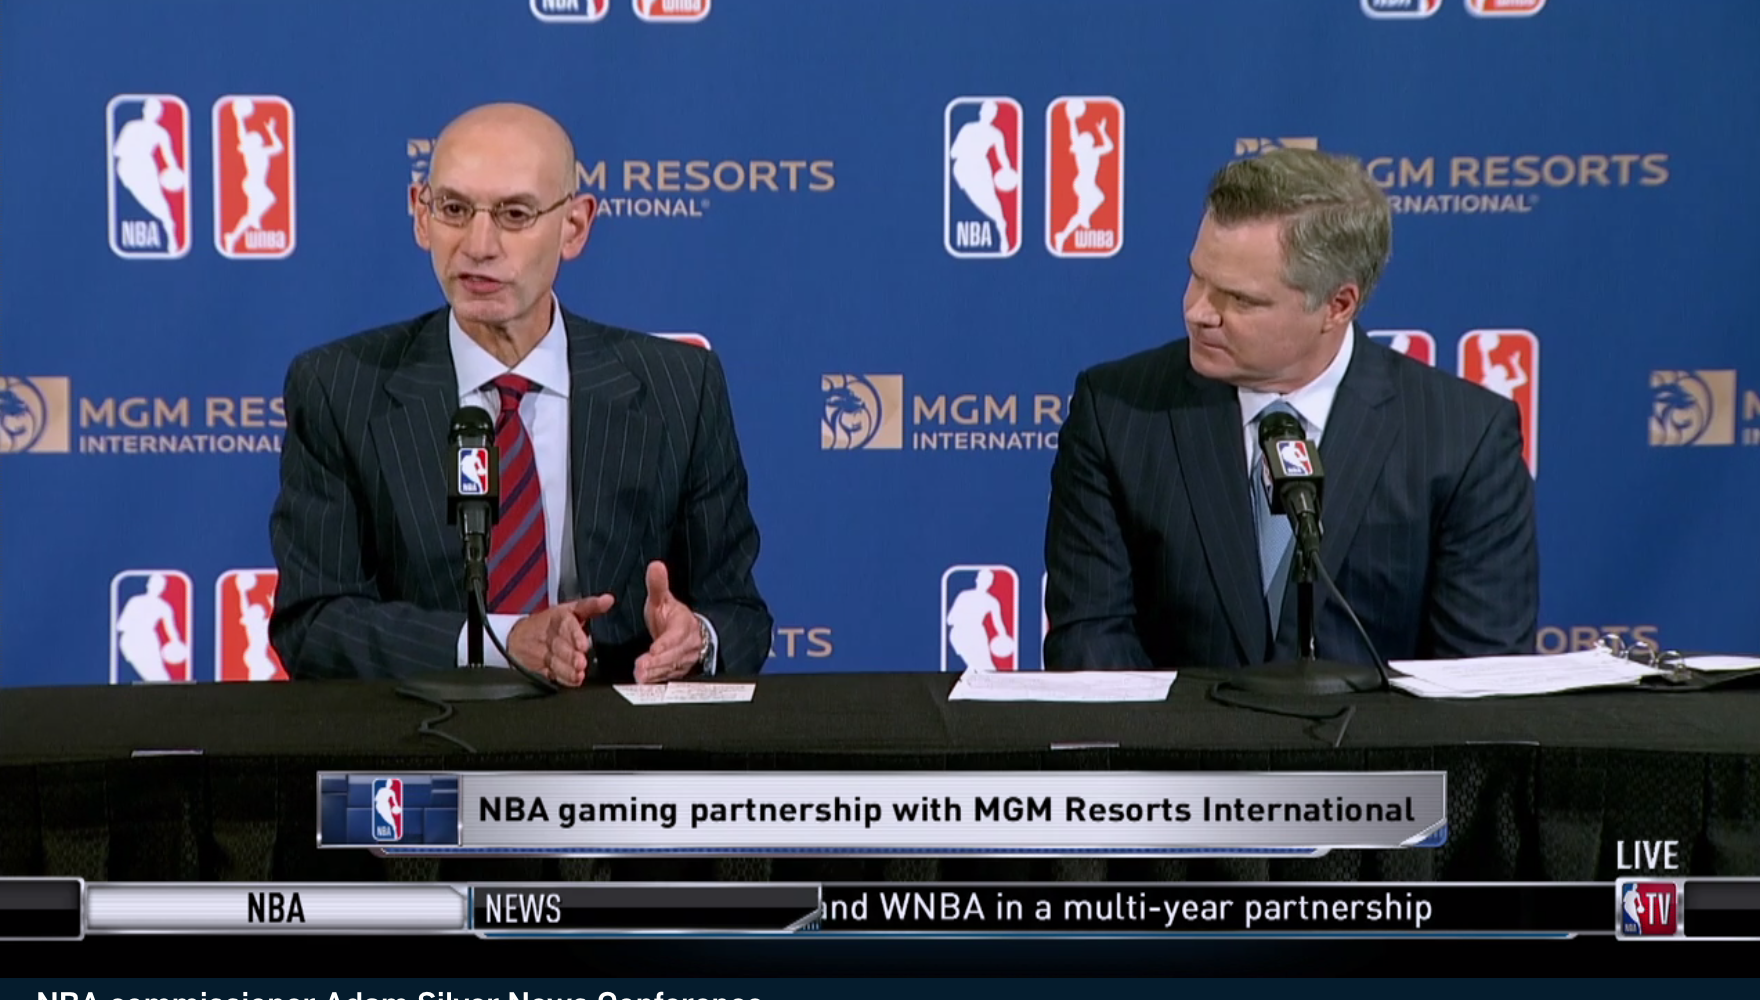 MGM Resorts Named Official Gaming Partner Of NBA And WNBA